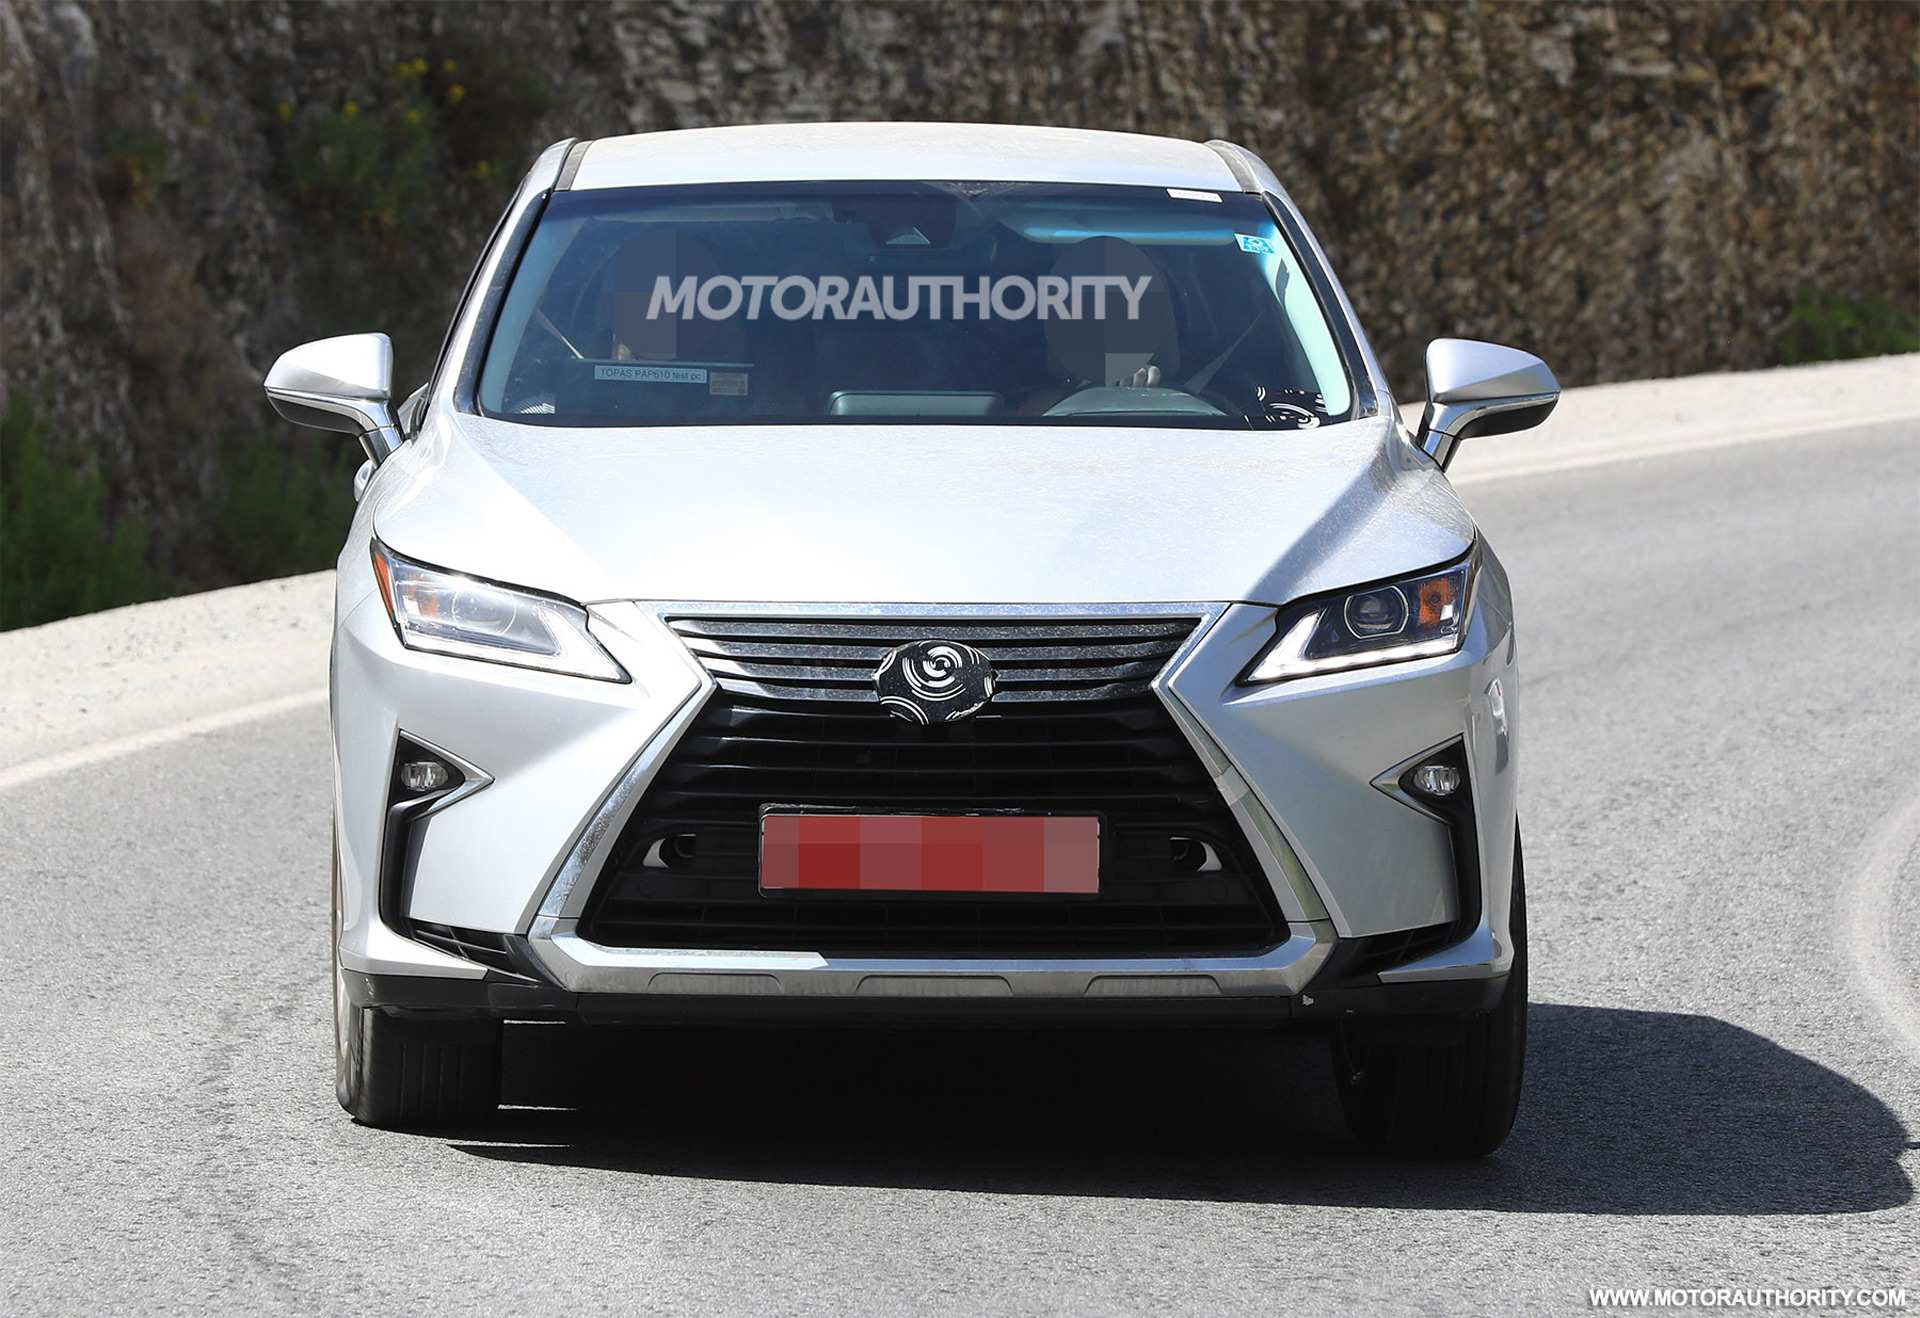 90 Great 2019 Lexus Gx Spy Photos Ratings by 2019 Lexus Gx Spy Photos